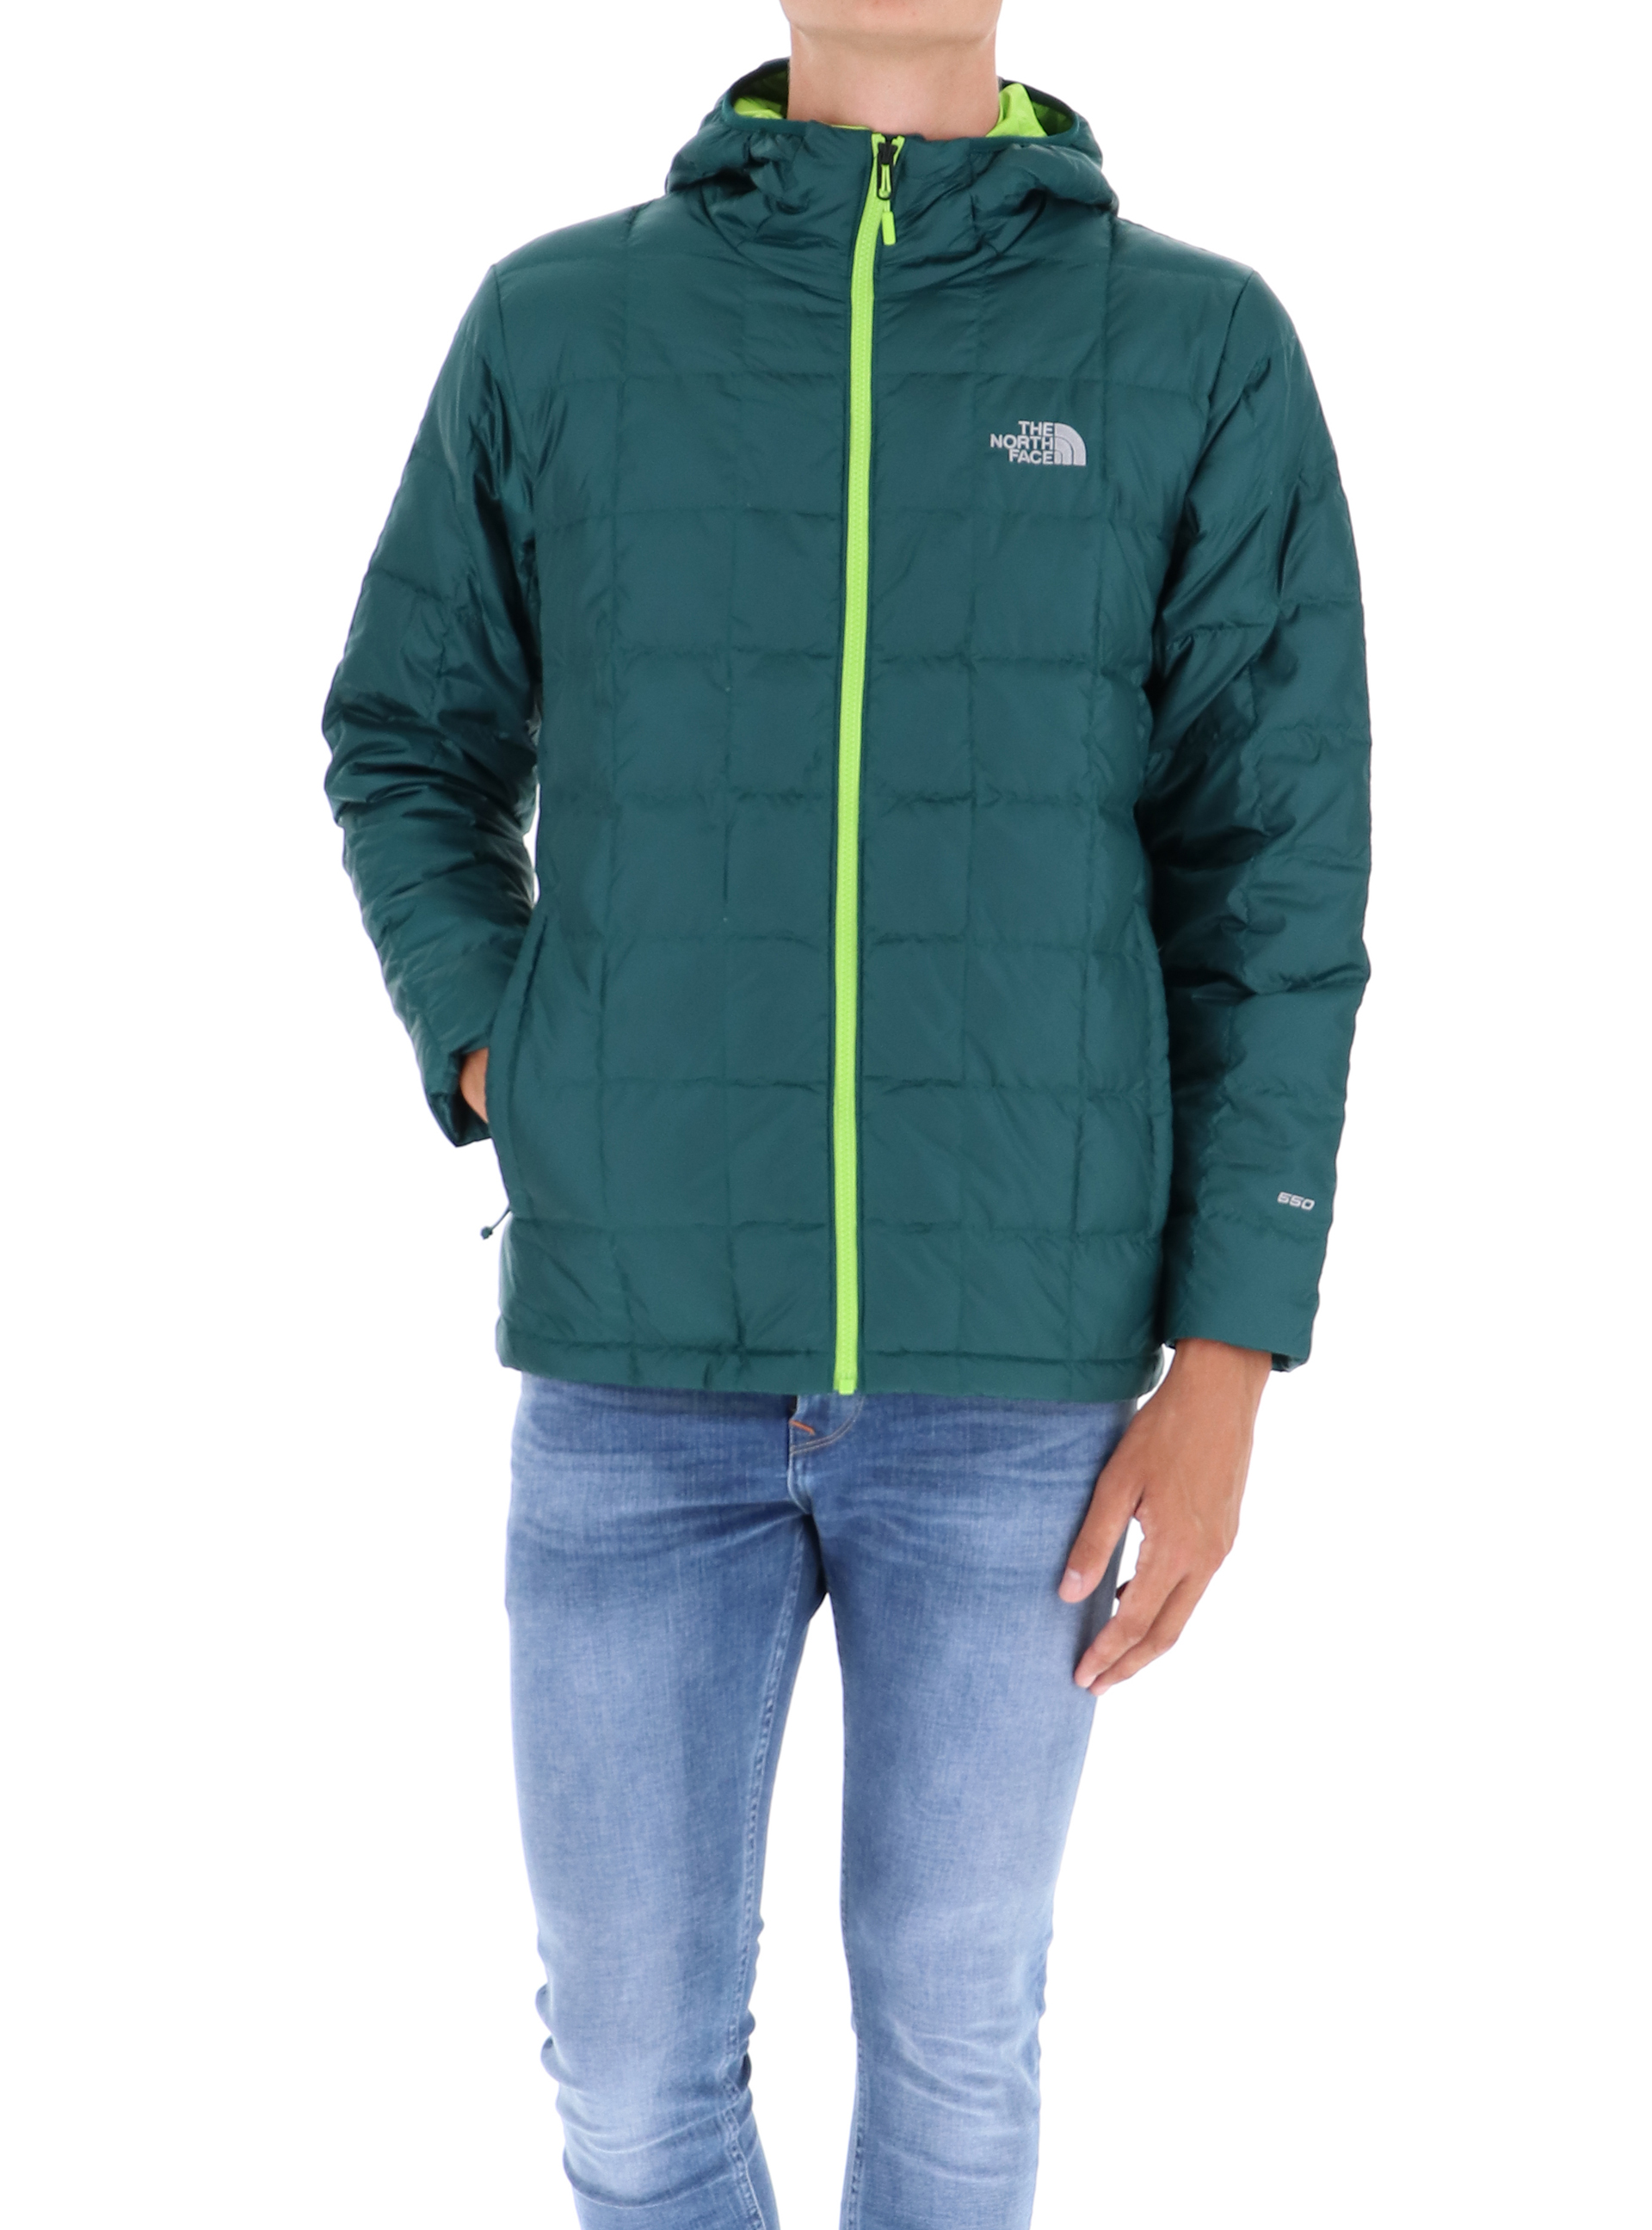 Face The Sport Jkt M Dwn Latini Hd North Kabru Botanical 55prUZqw dd71257cbded